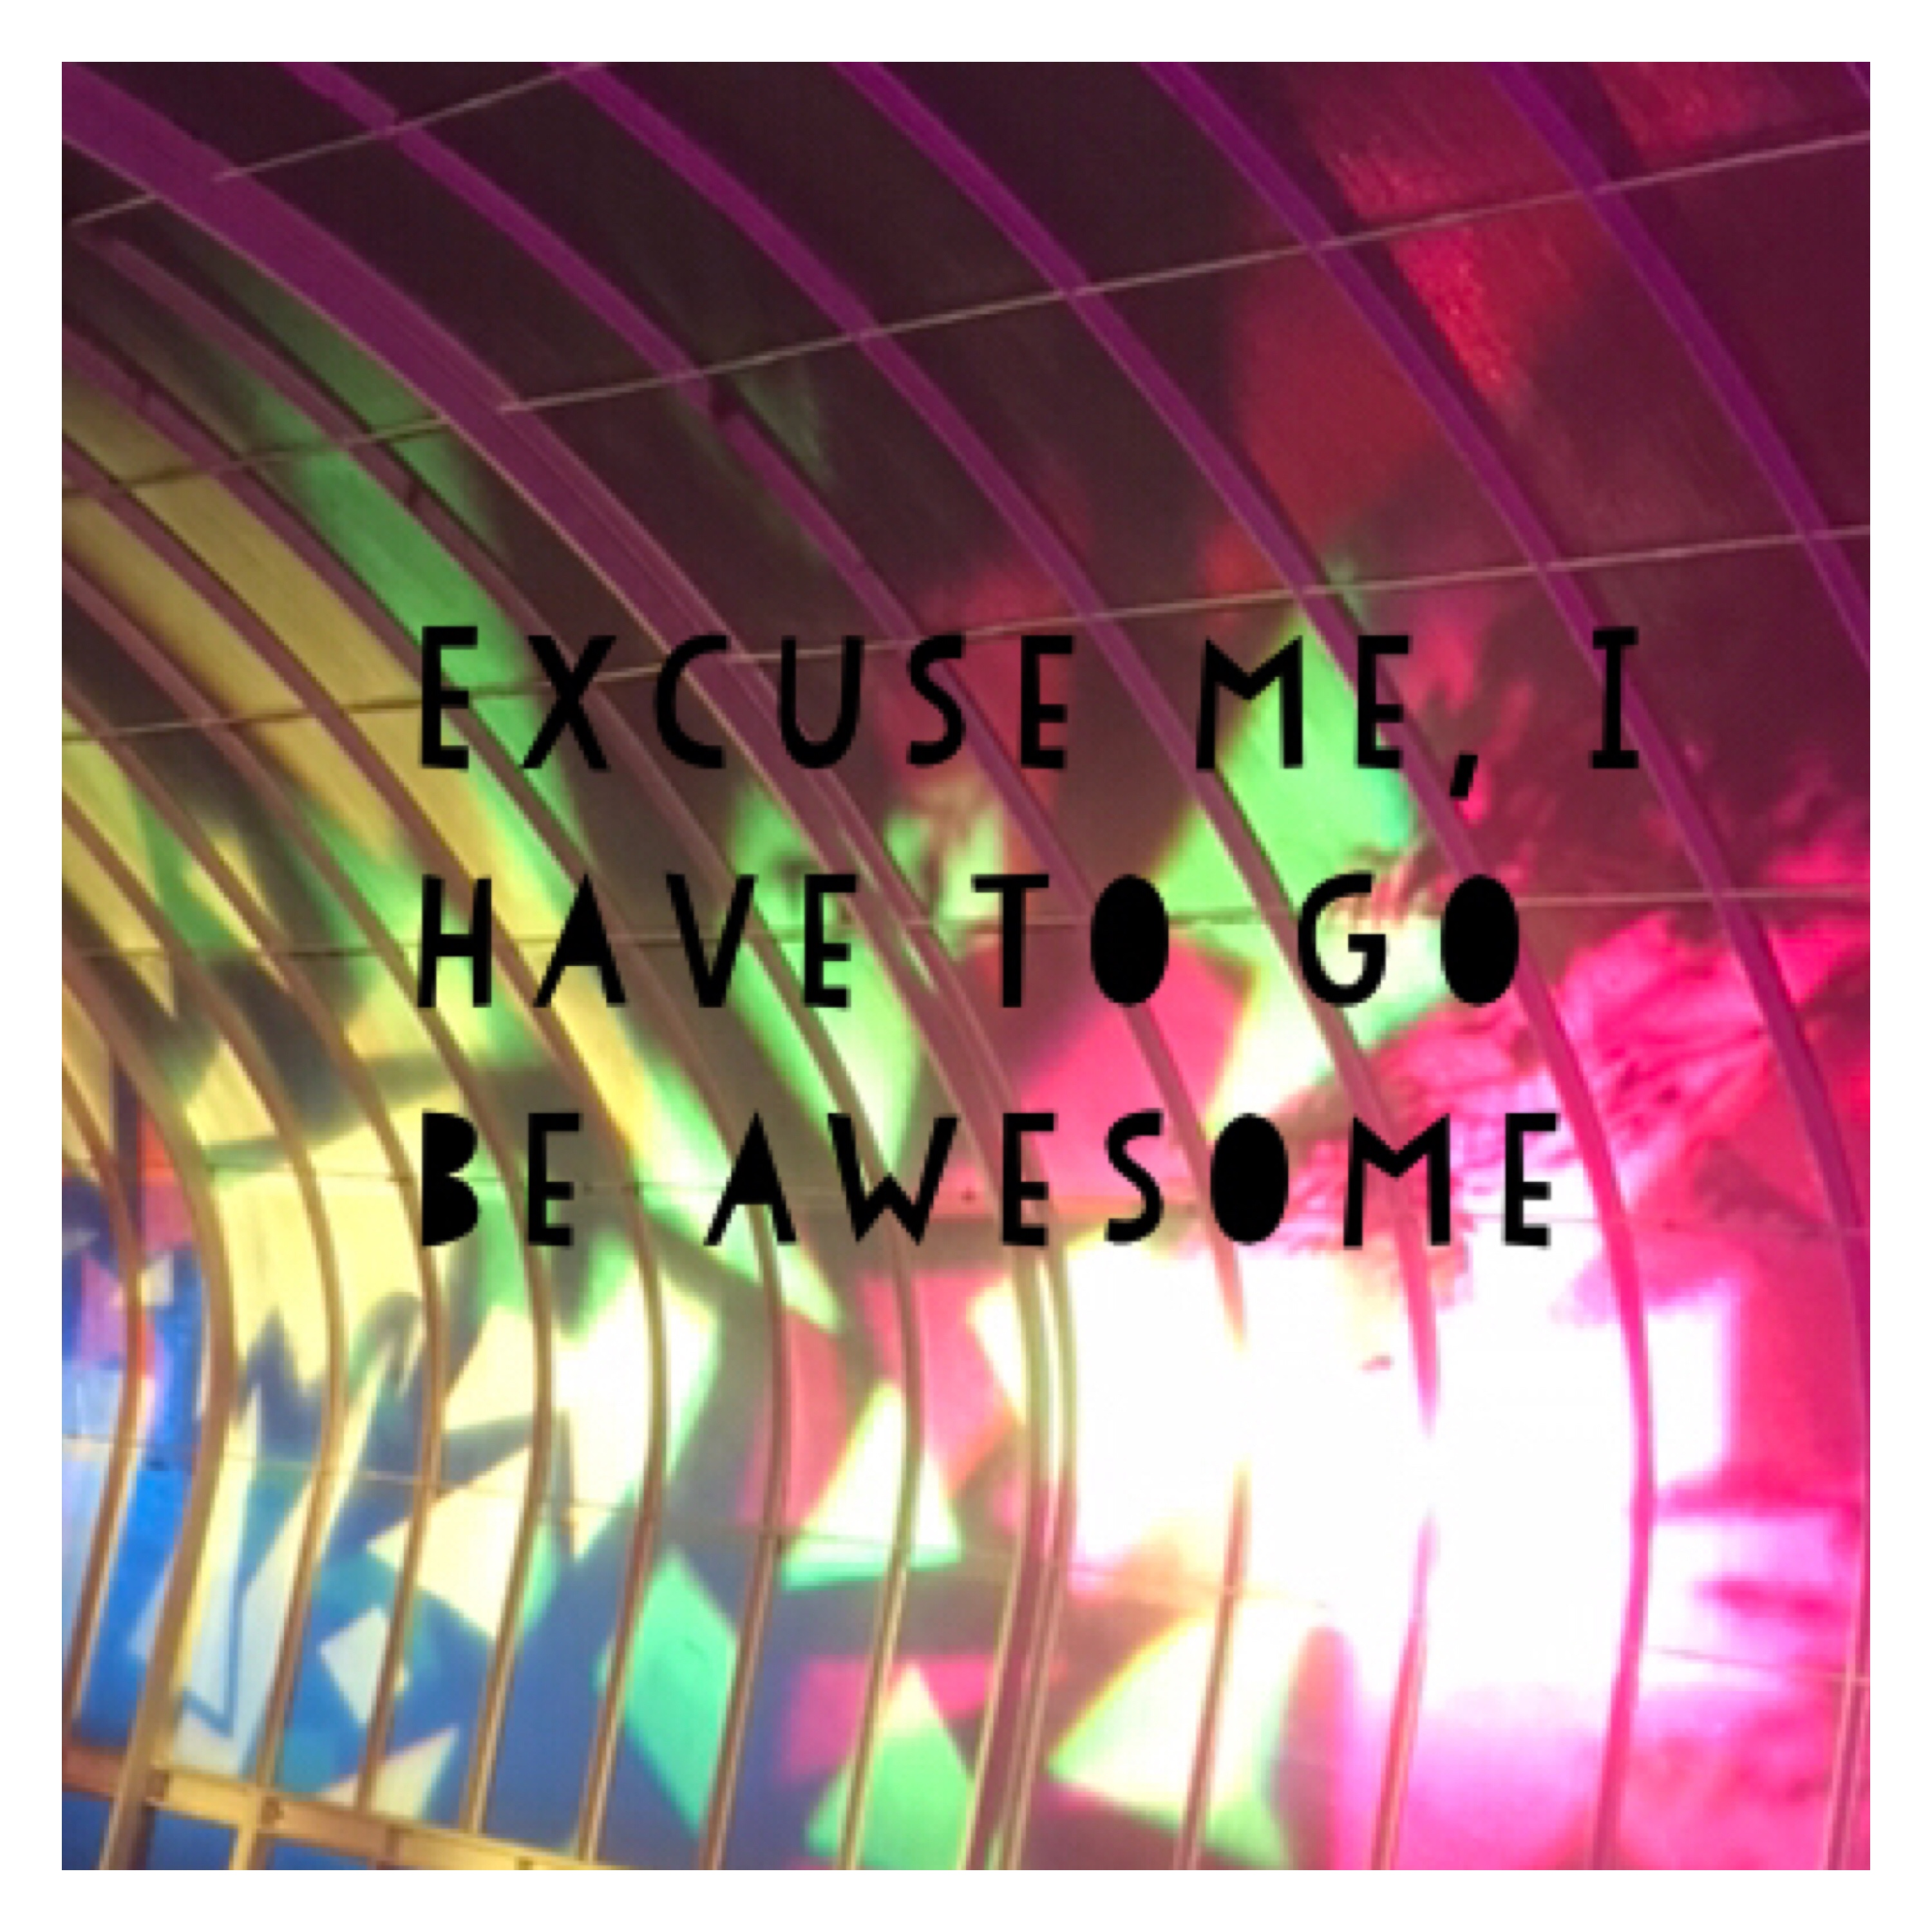 Excuse me I have to go me awesome